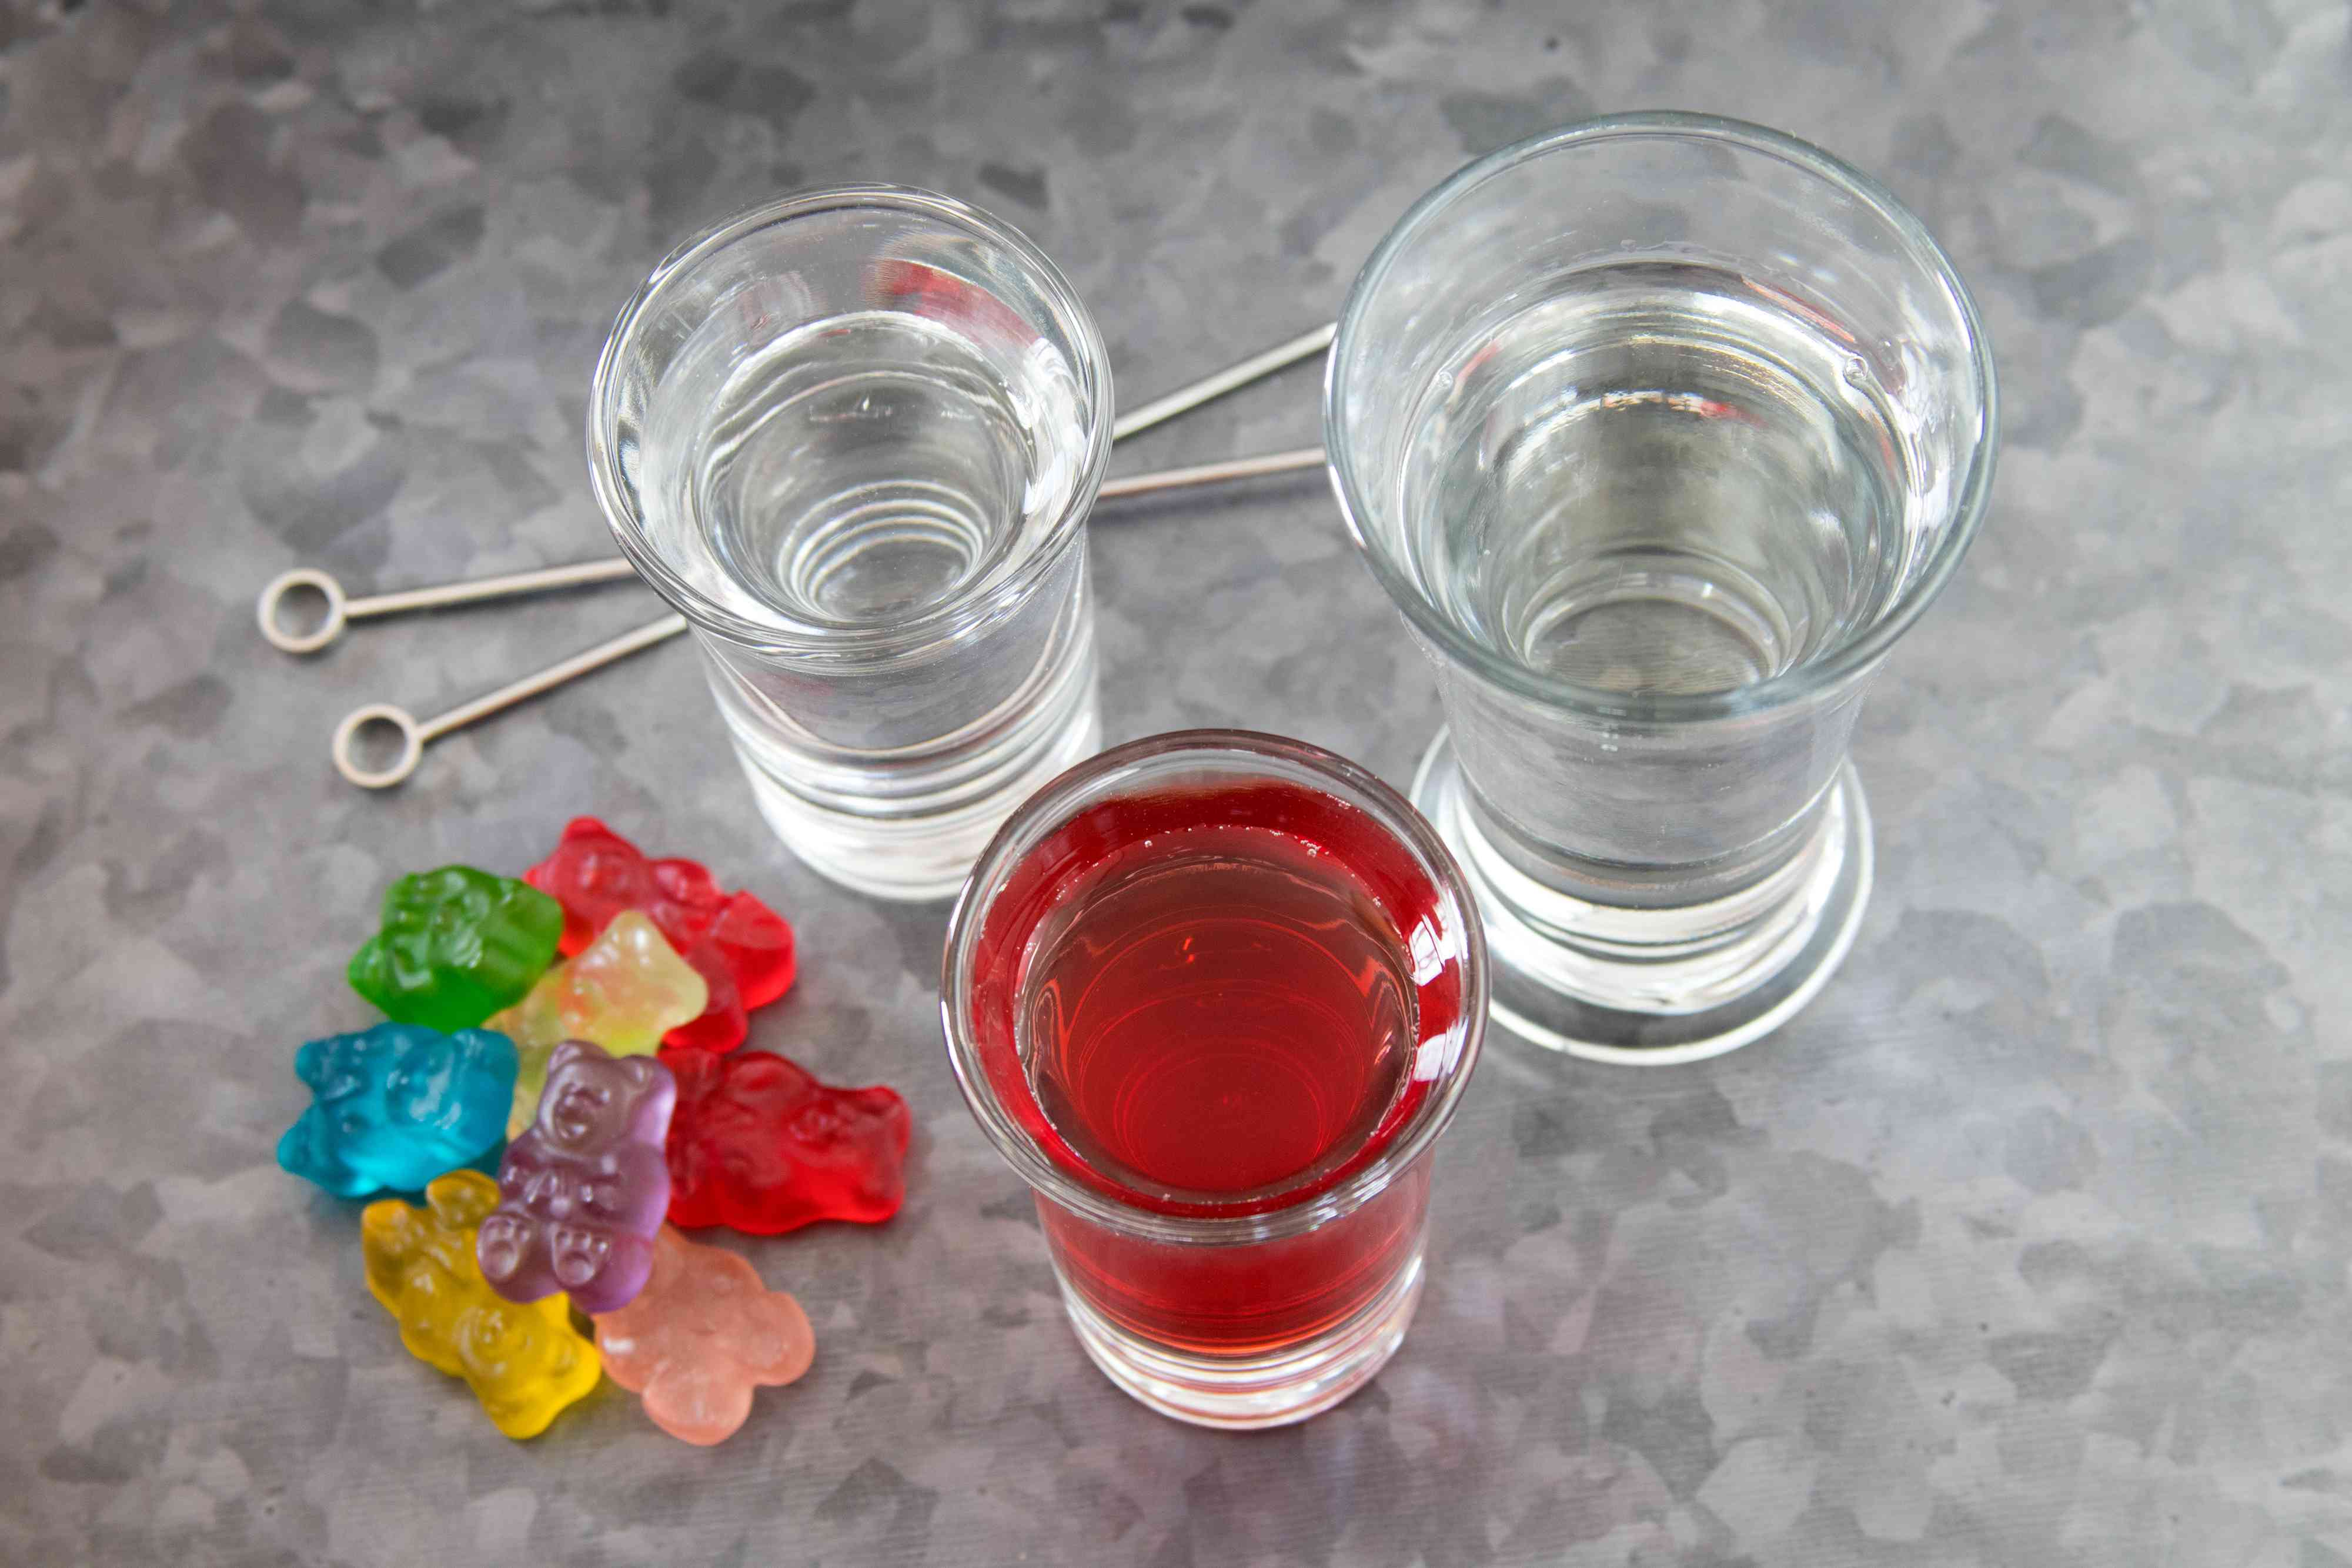 Ingredients for a Gummy Bear Martini